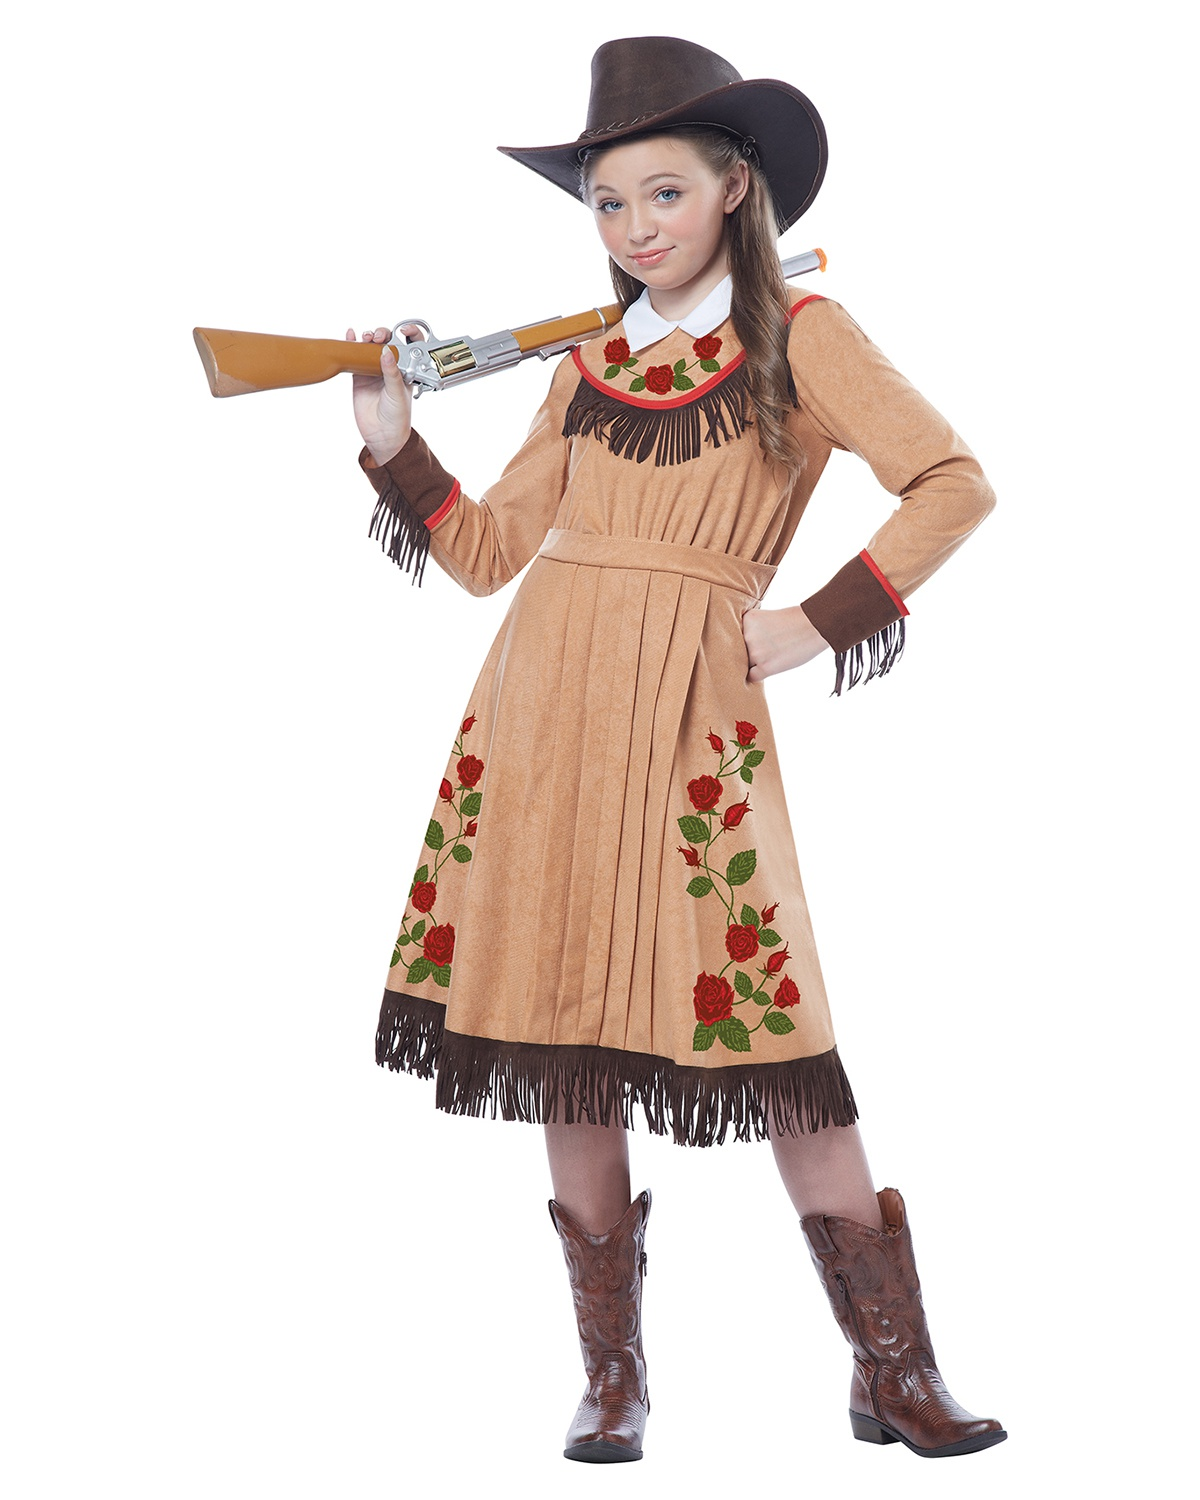 'California Costumes 00479 Cowgir Annie Oakley Girl Costume'